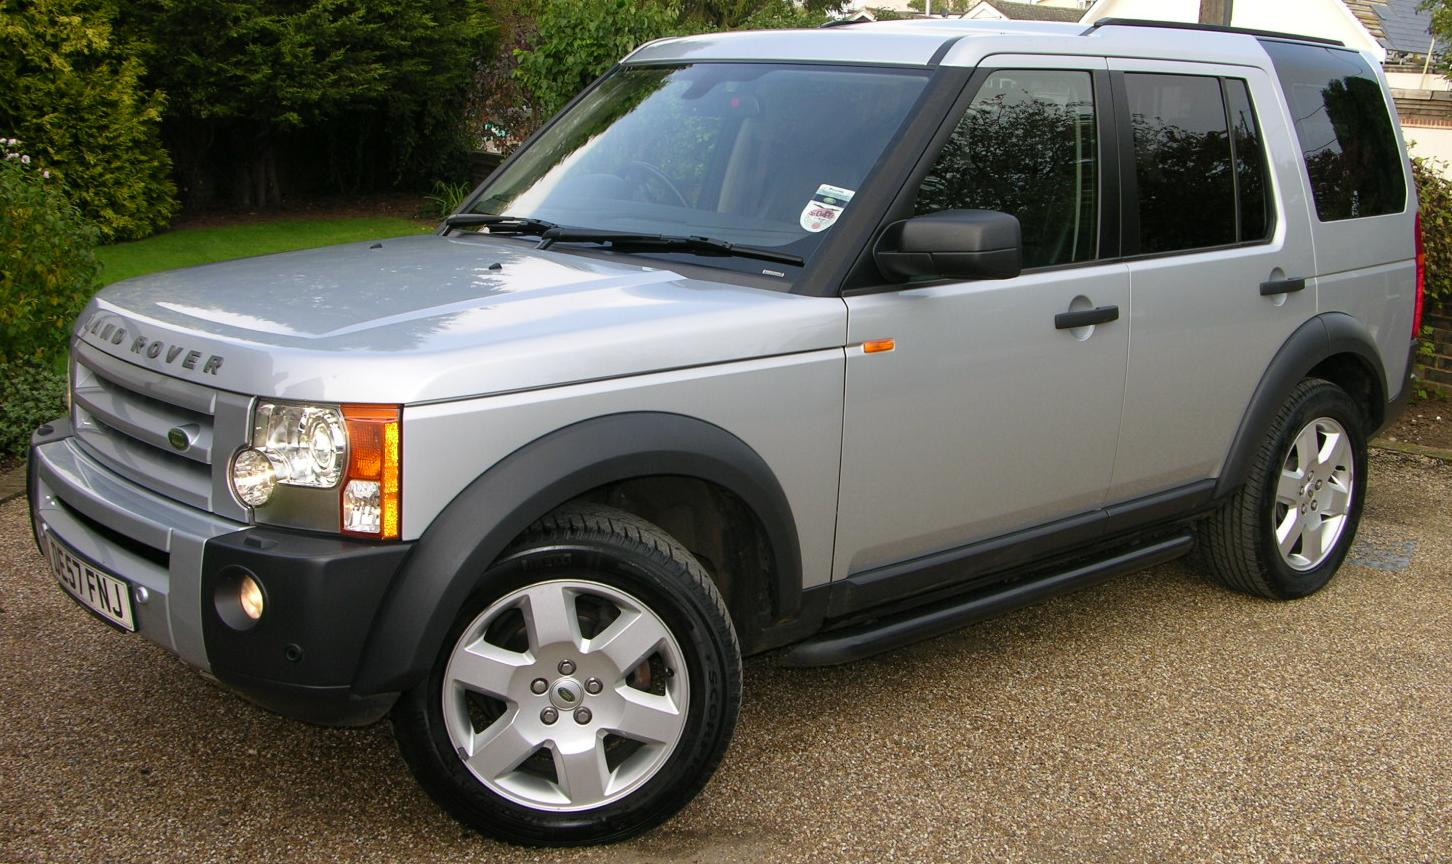 file 2007 land rover discovery 3 tdv6 hse flickr the car wikimedia commons. Black Bedroom Furniture Sets. Home Design Ideas